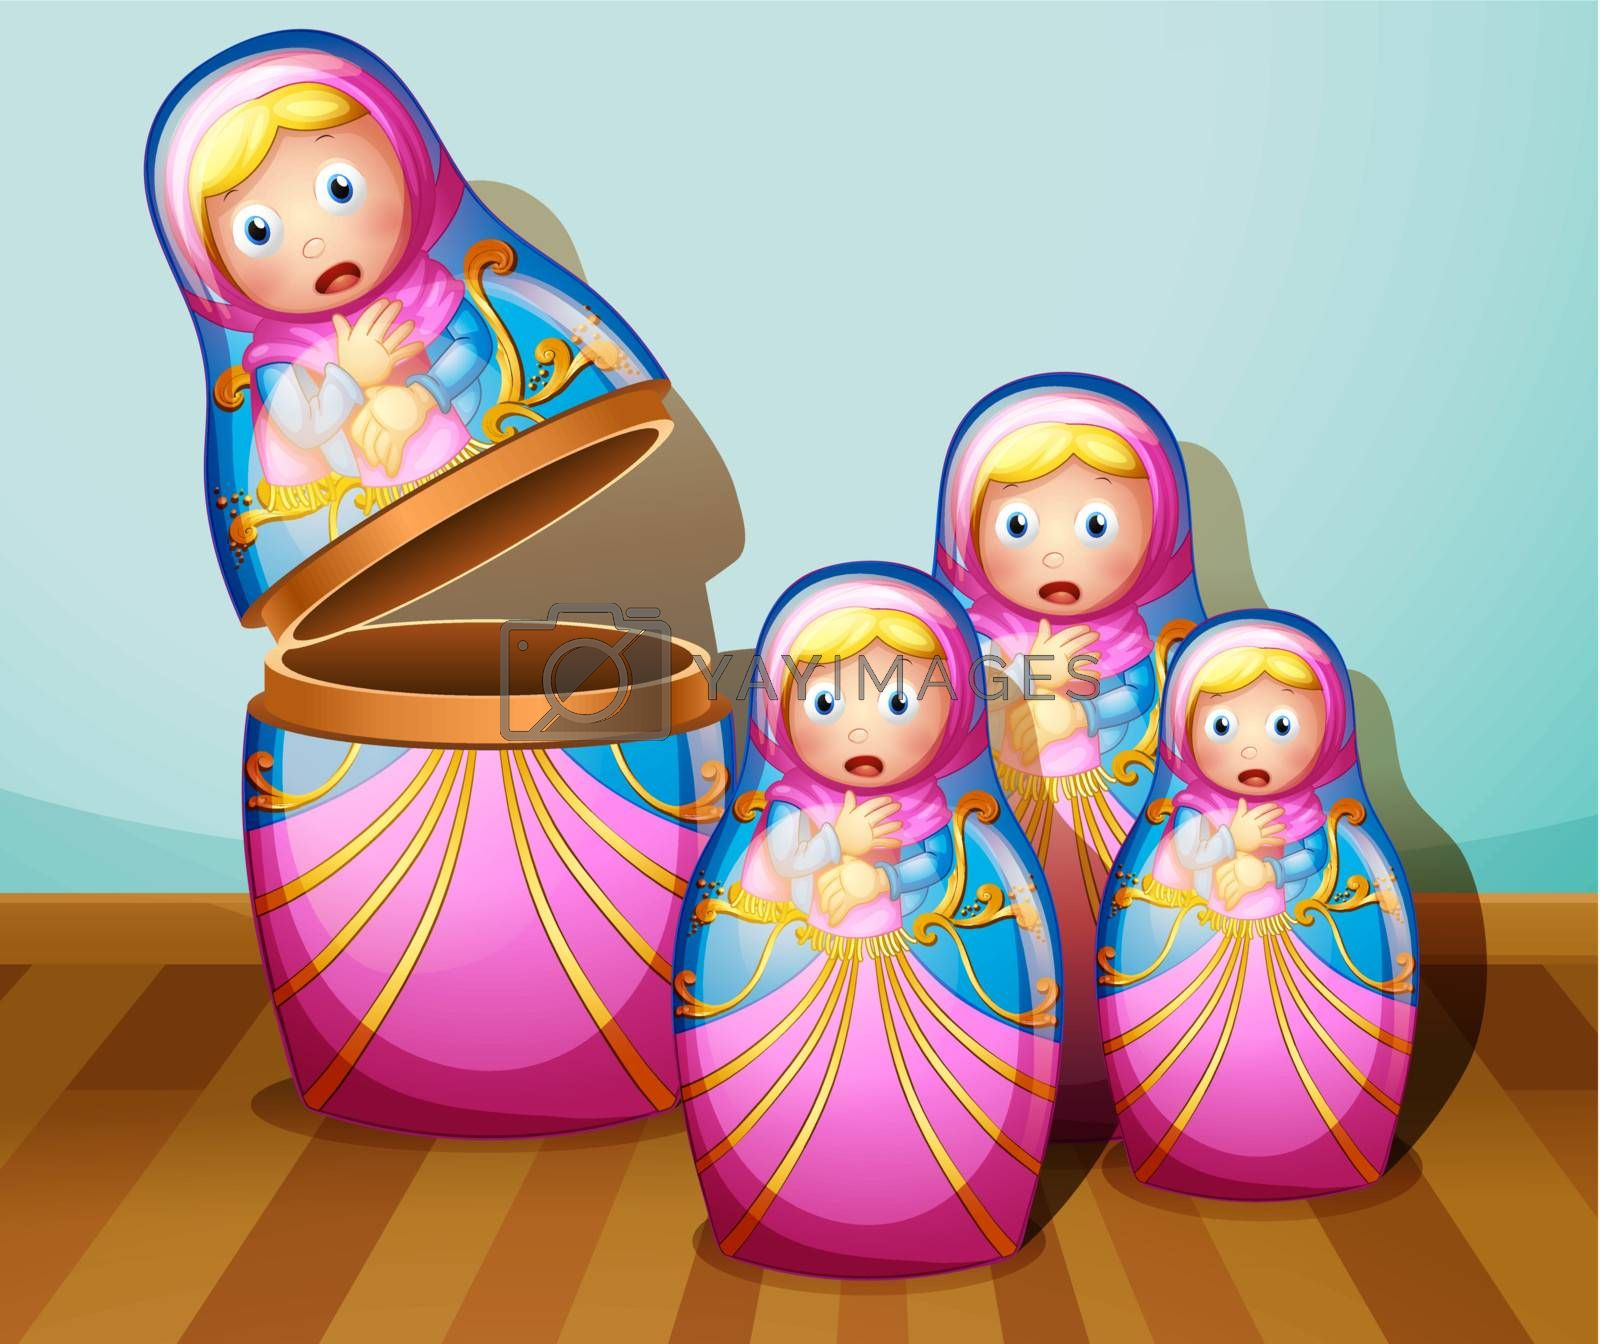 Illustration of the four colorful Russian dolls